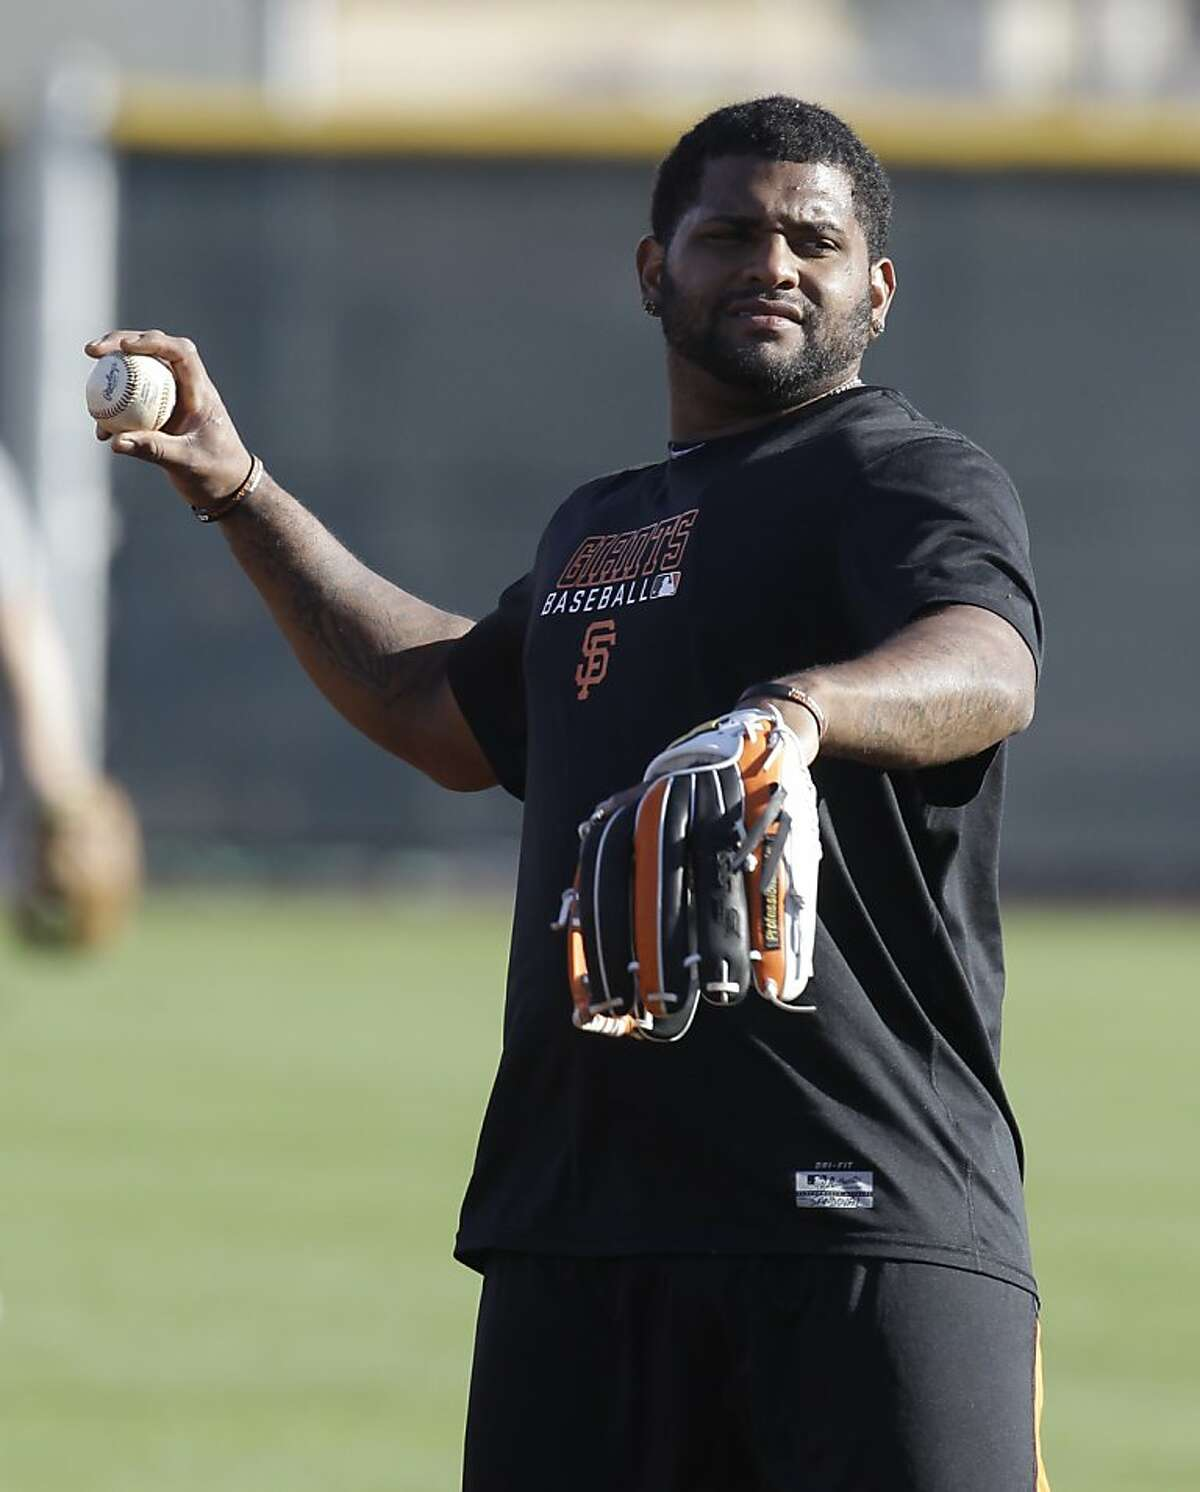 San Francisco Giants' Pablo Sandoval reacts while taking infield practice during a spring training baseball workout Wednesday, Feb. 22, 2012, in Scottsdale, Ariz. (AP Photo/Darron Cummings)